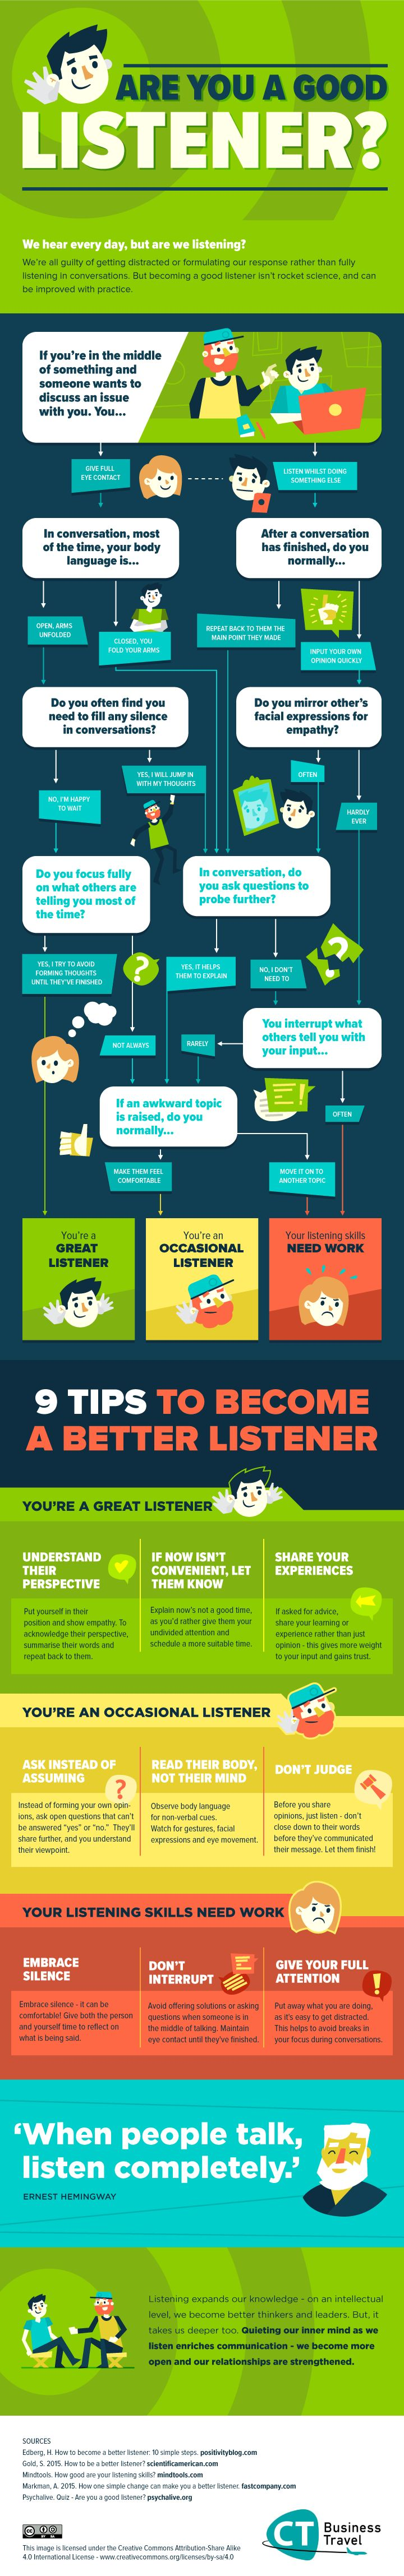 Are you a good listener? Use this flowchart to evaluate your own skills, and if they come up lacking, it also provides advice on how to improve this essential element of effective communication.